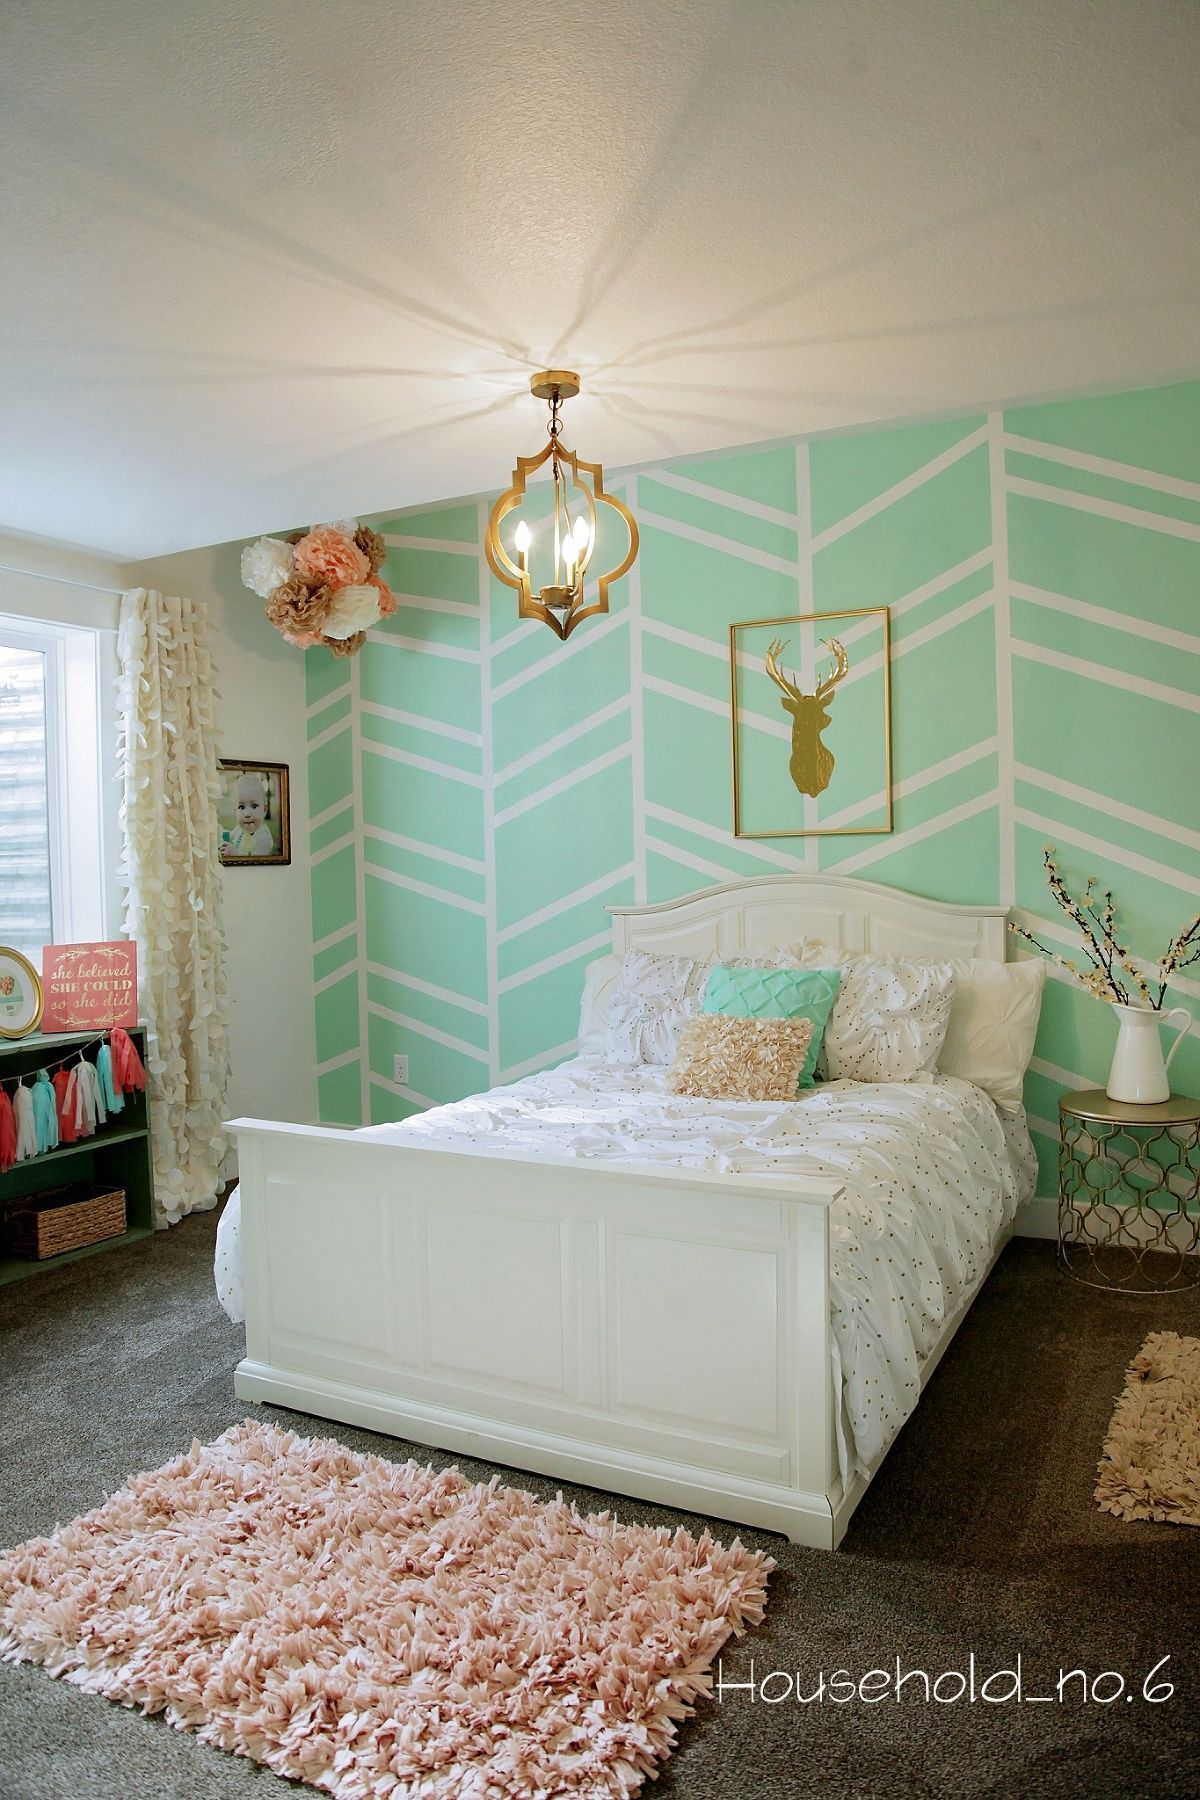 Tween mint and gold bedroom Harringbone wall